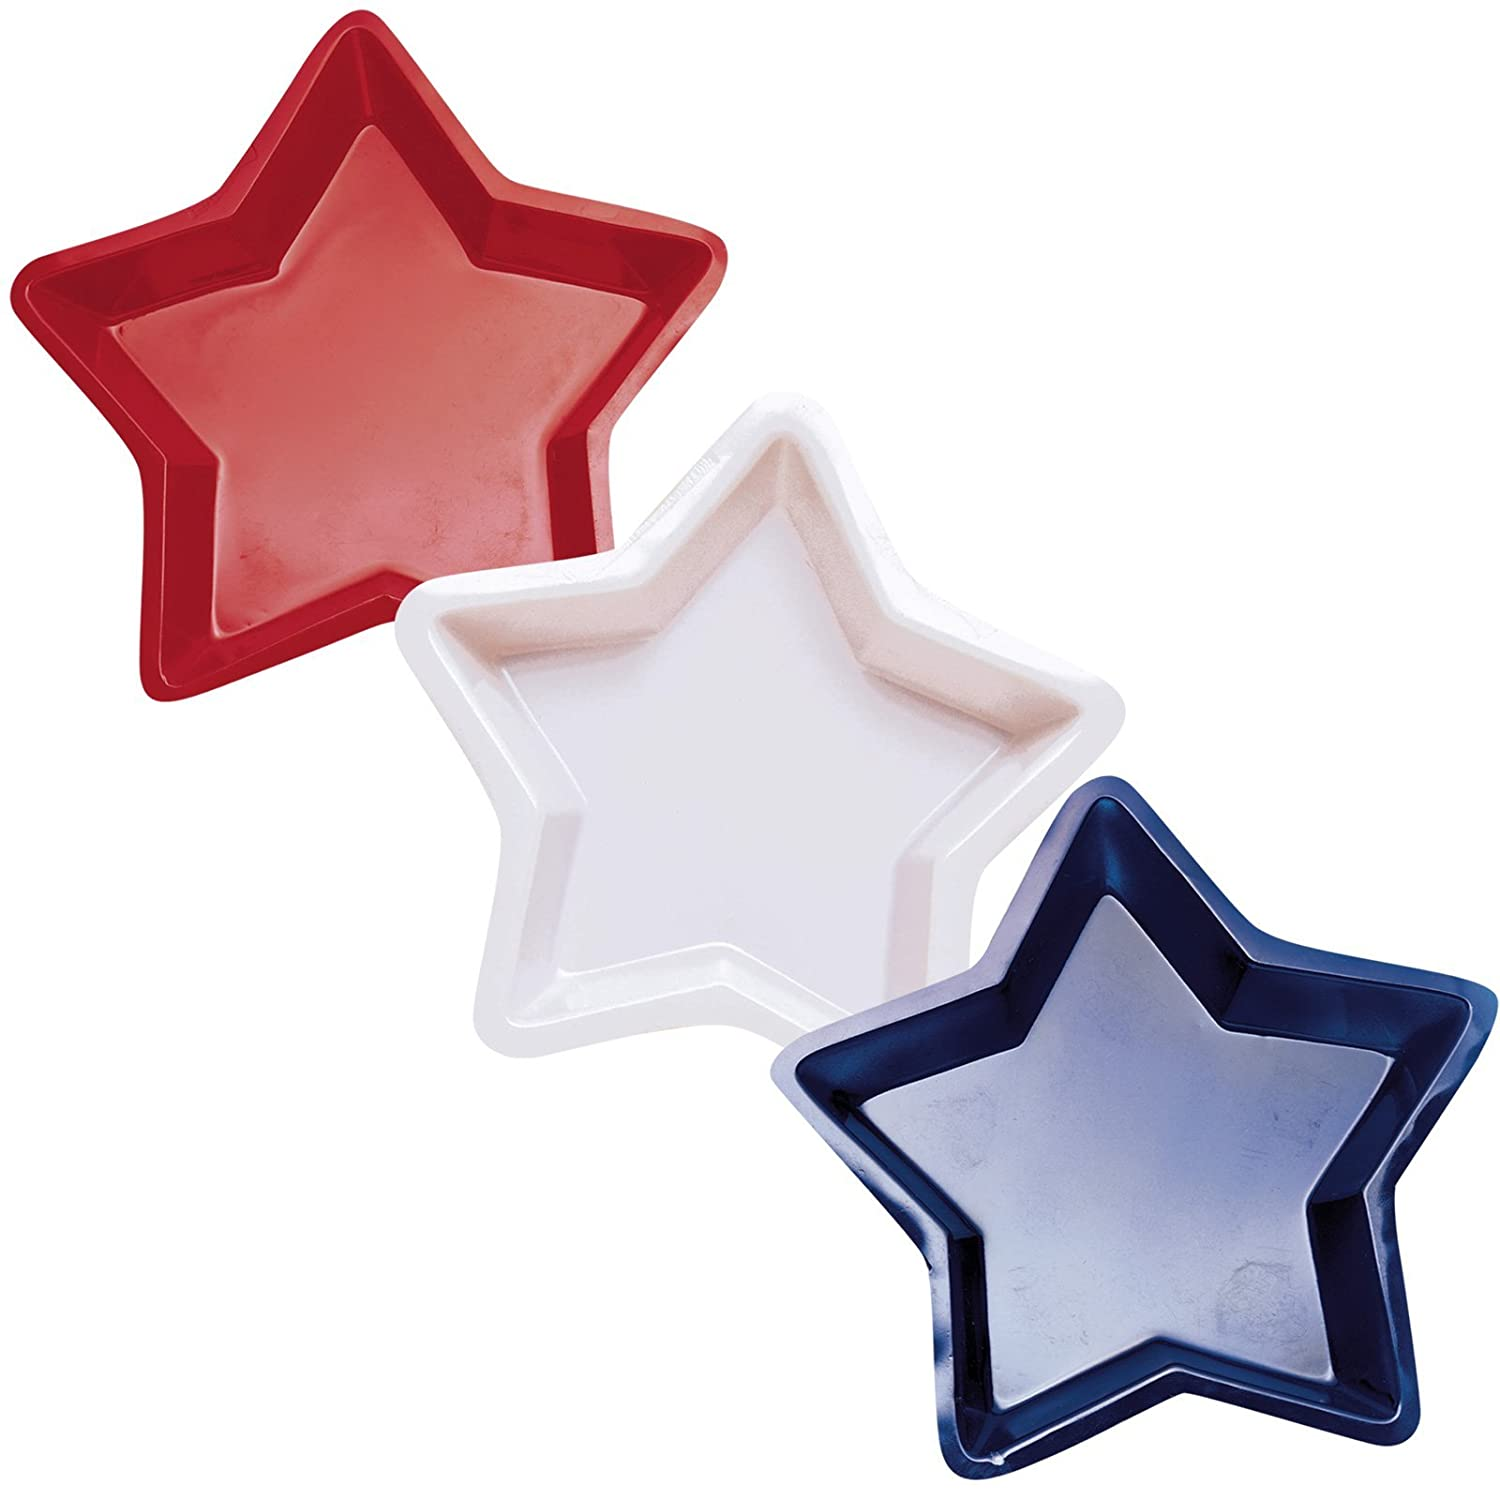 Party Star Tray 12 12 Amscan 439658